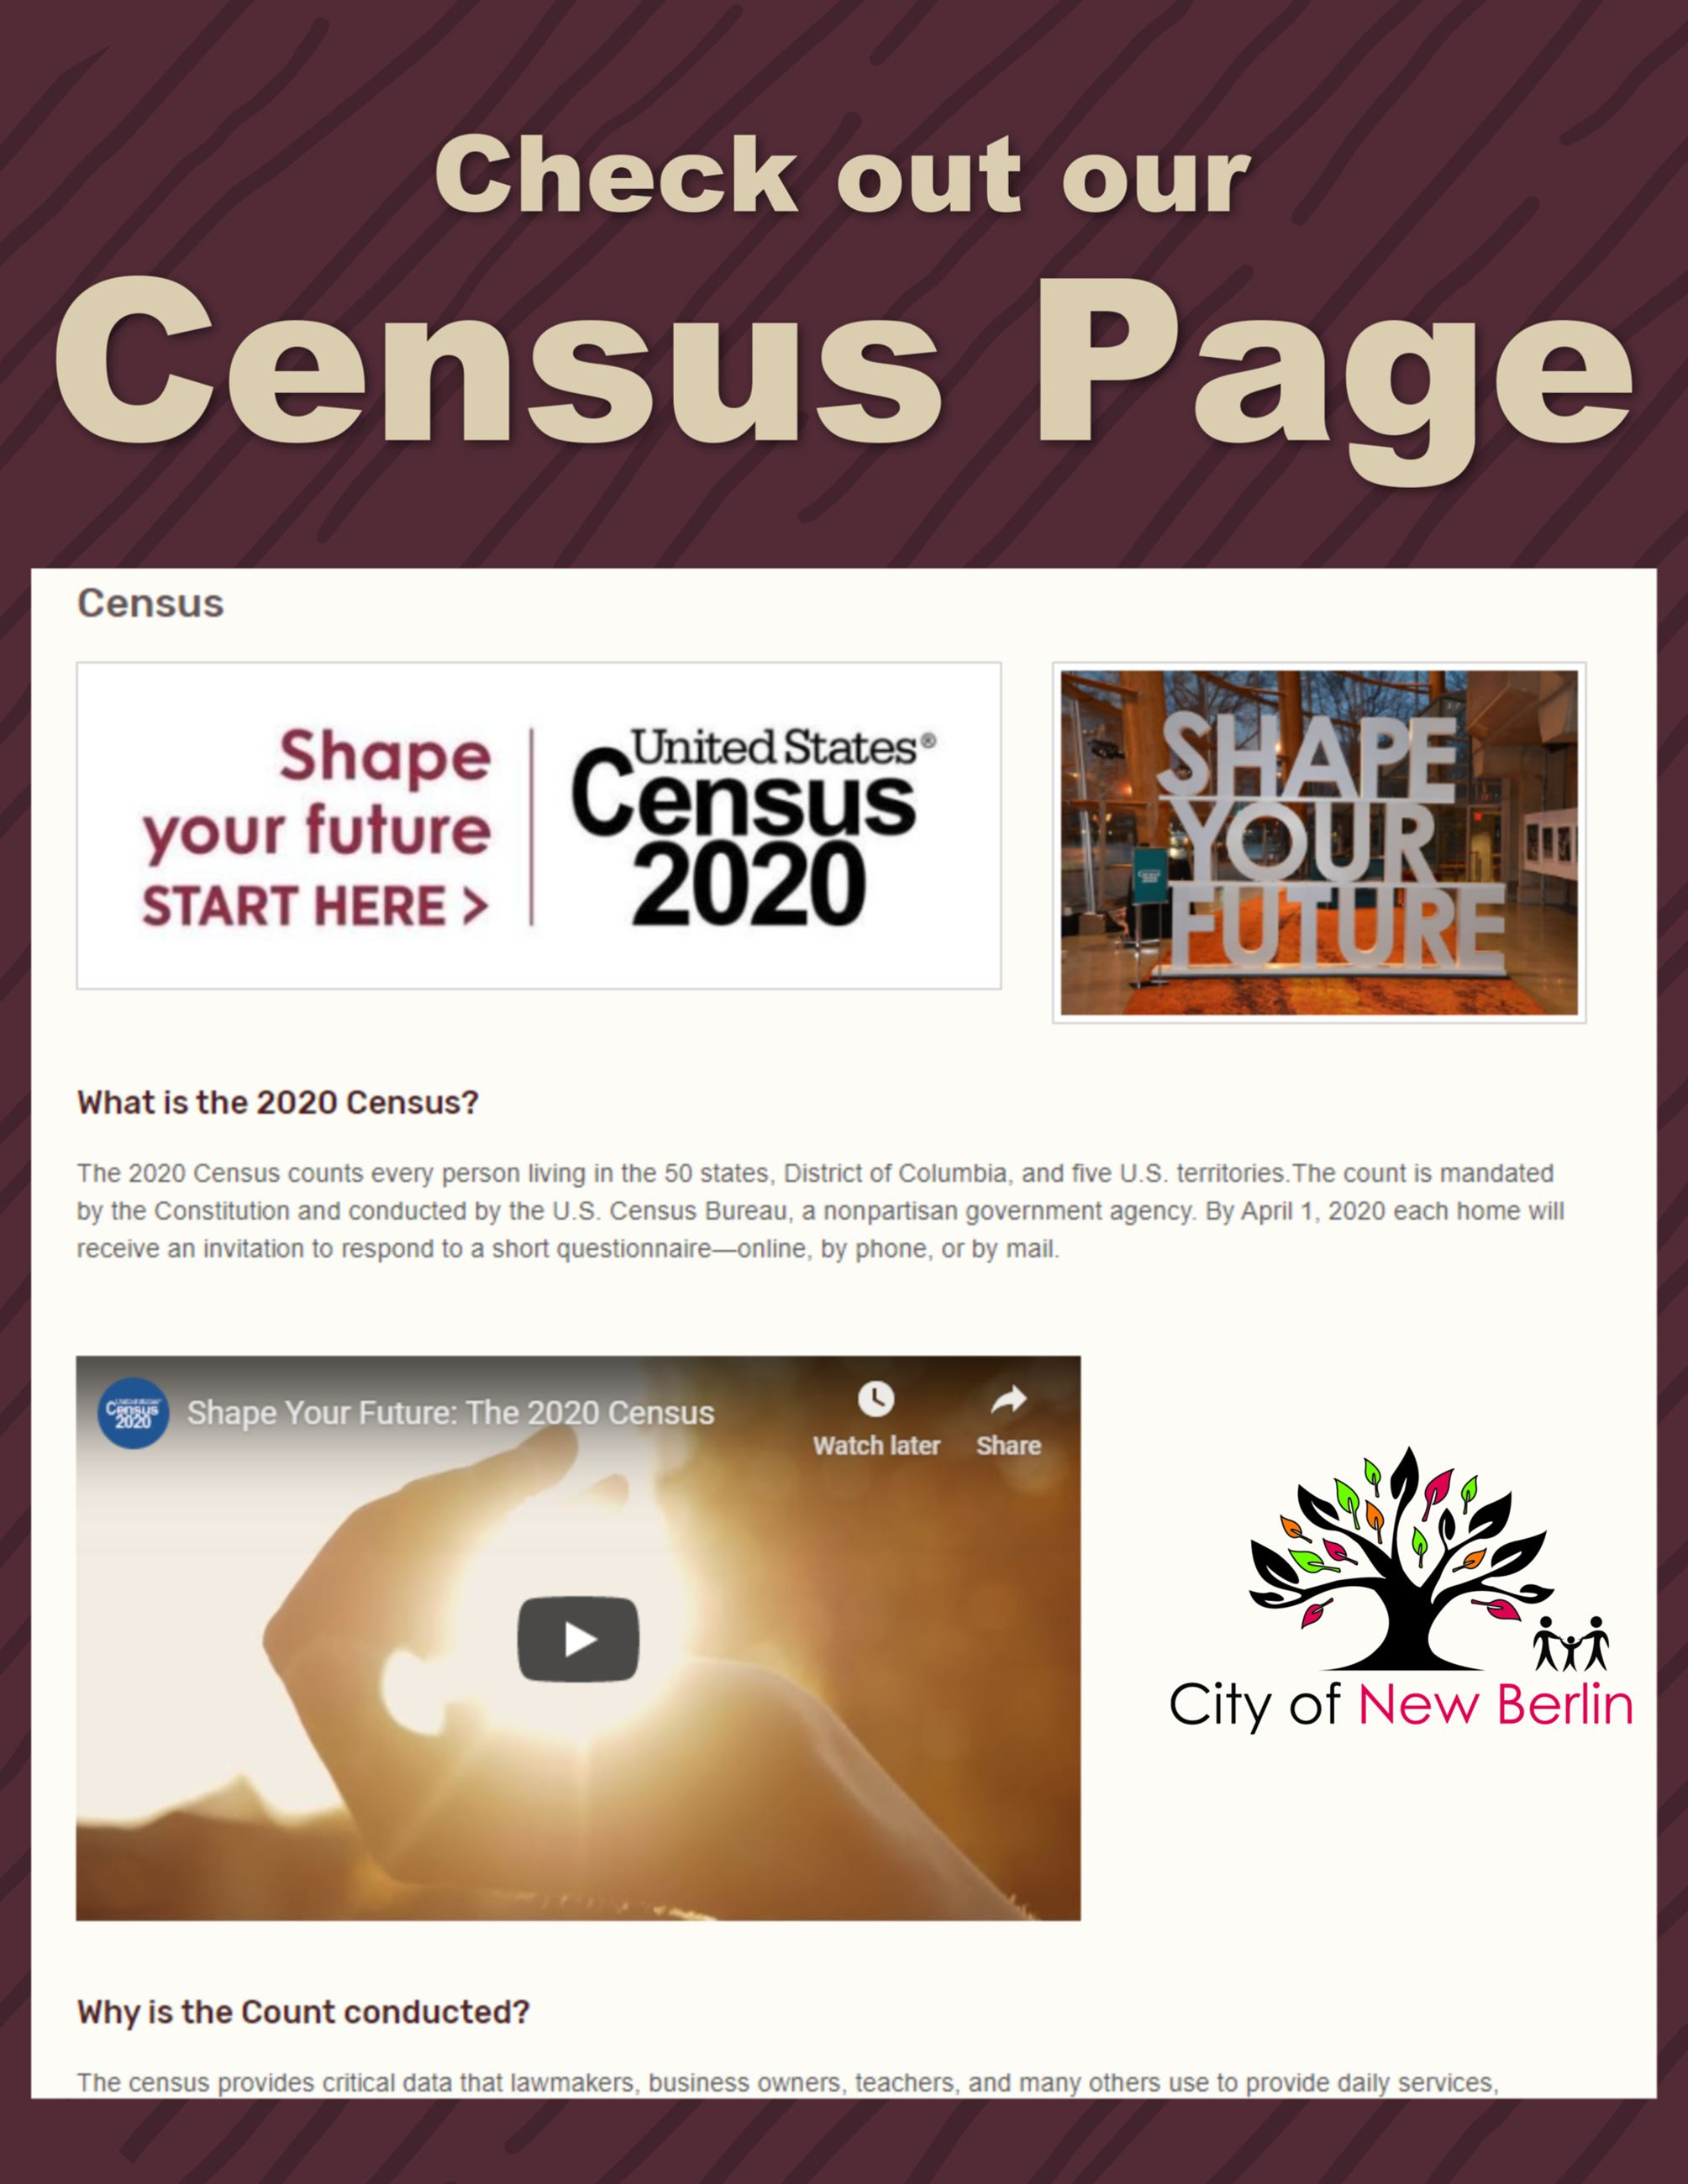 Census Page Advertisement